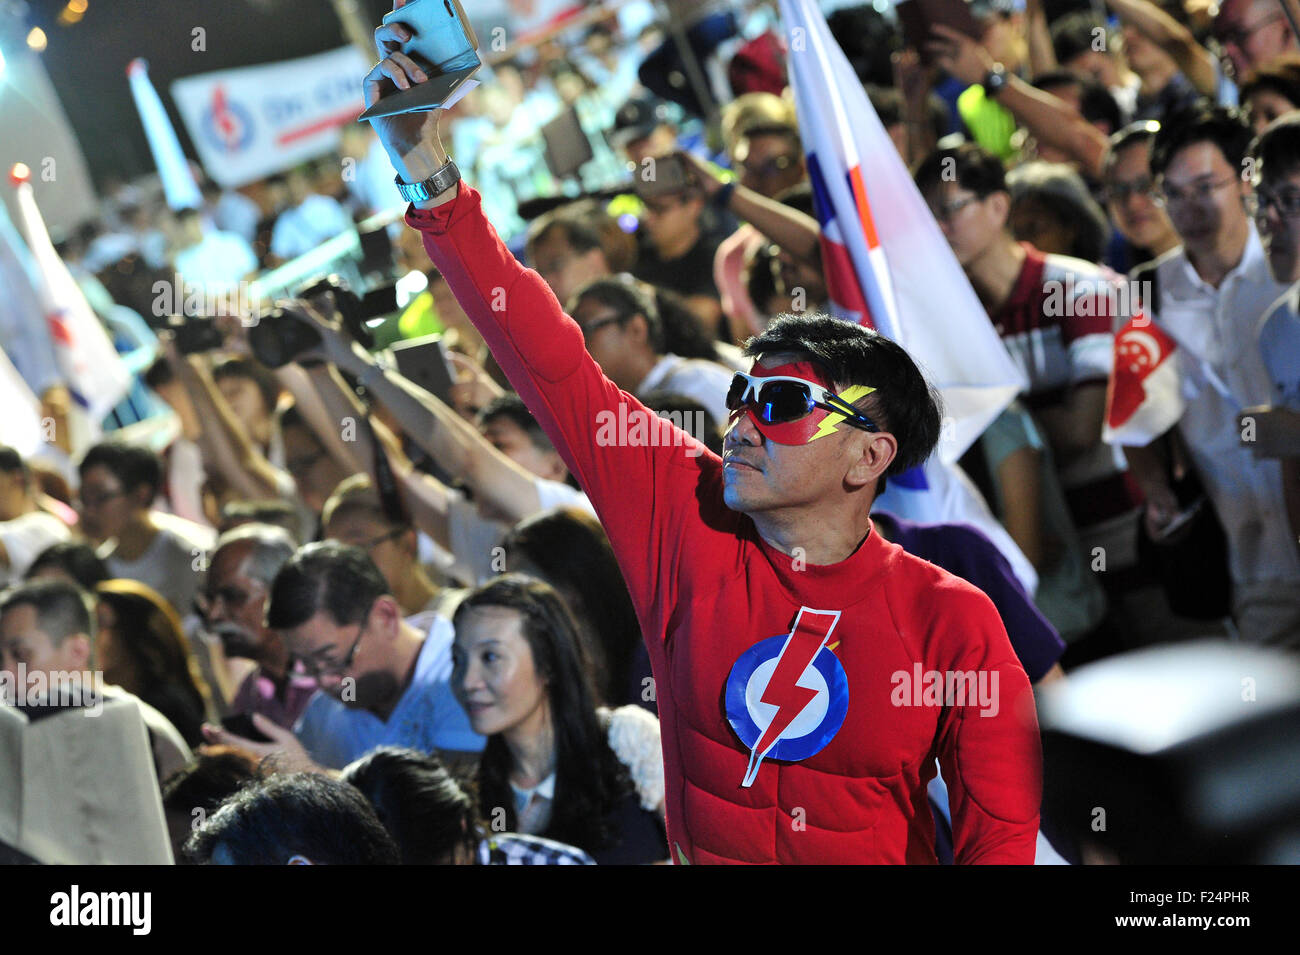 Singapore. 12th Sep, 2015. Supporters of Singapore's People's Action Party (PAP) wave party flags at the - Stock Image